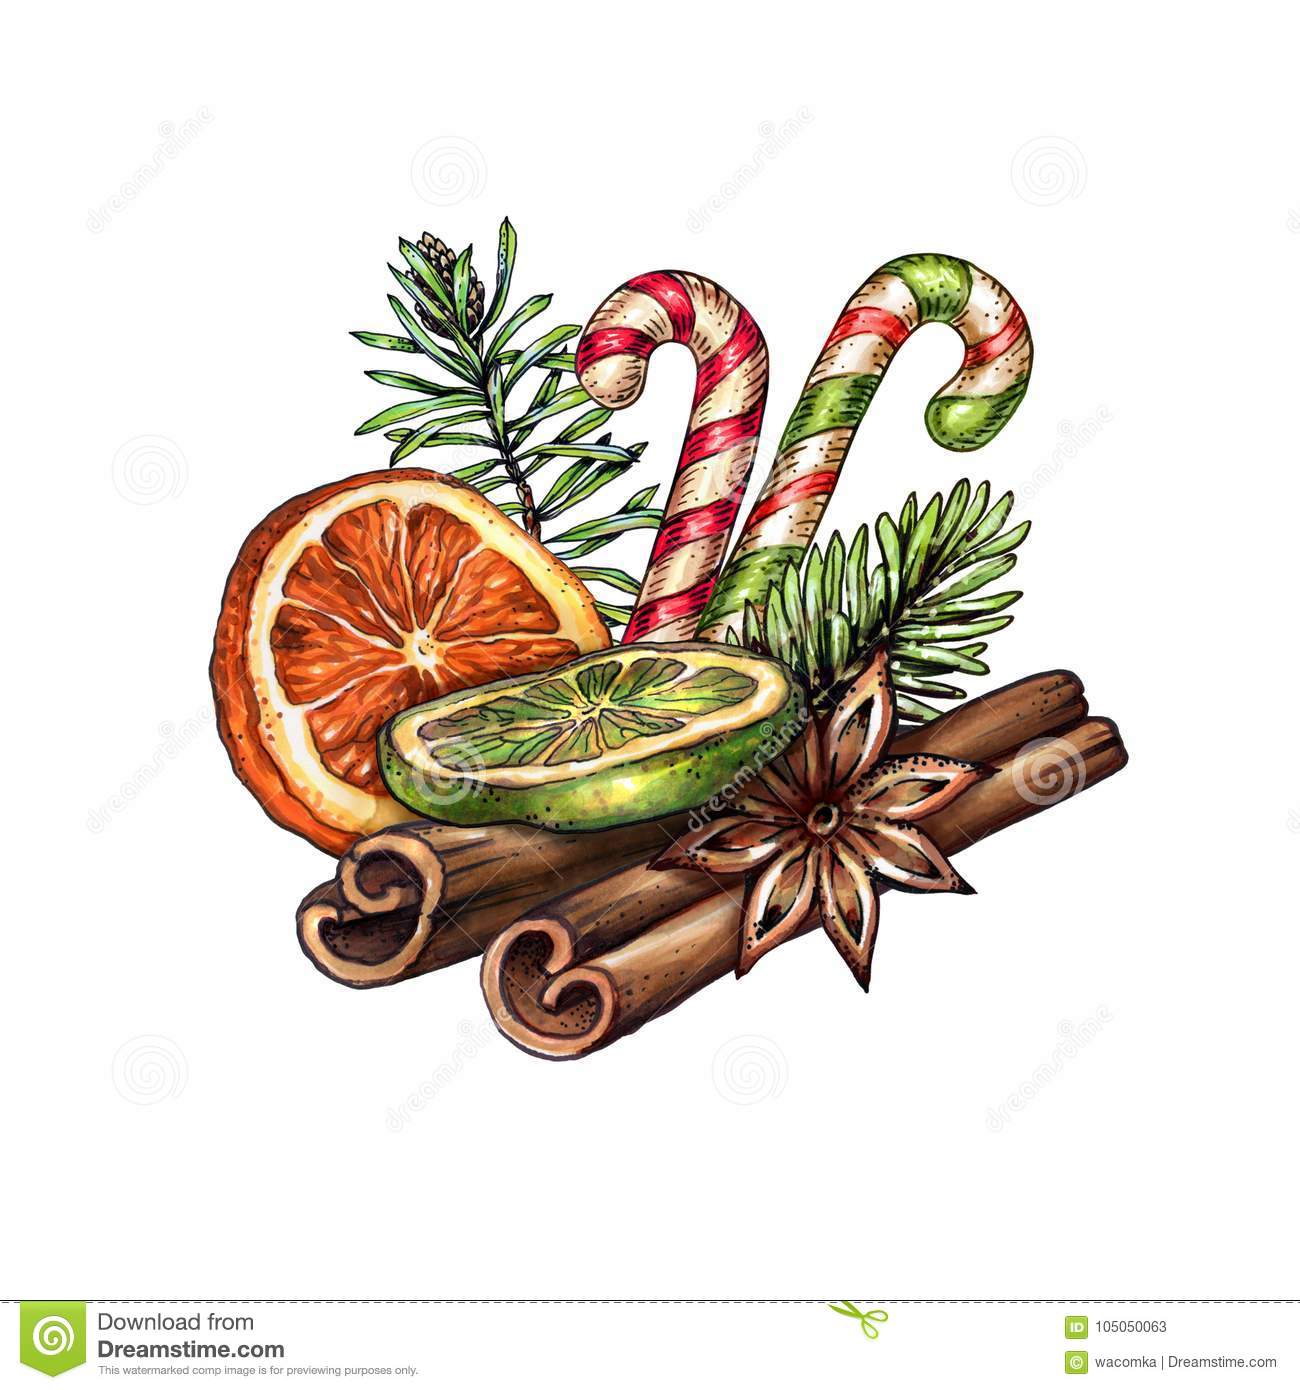 Watercolor Christmas Decoration Festive Food Illustration Dried